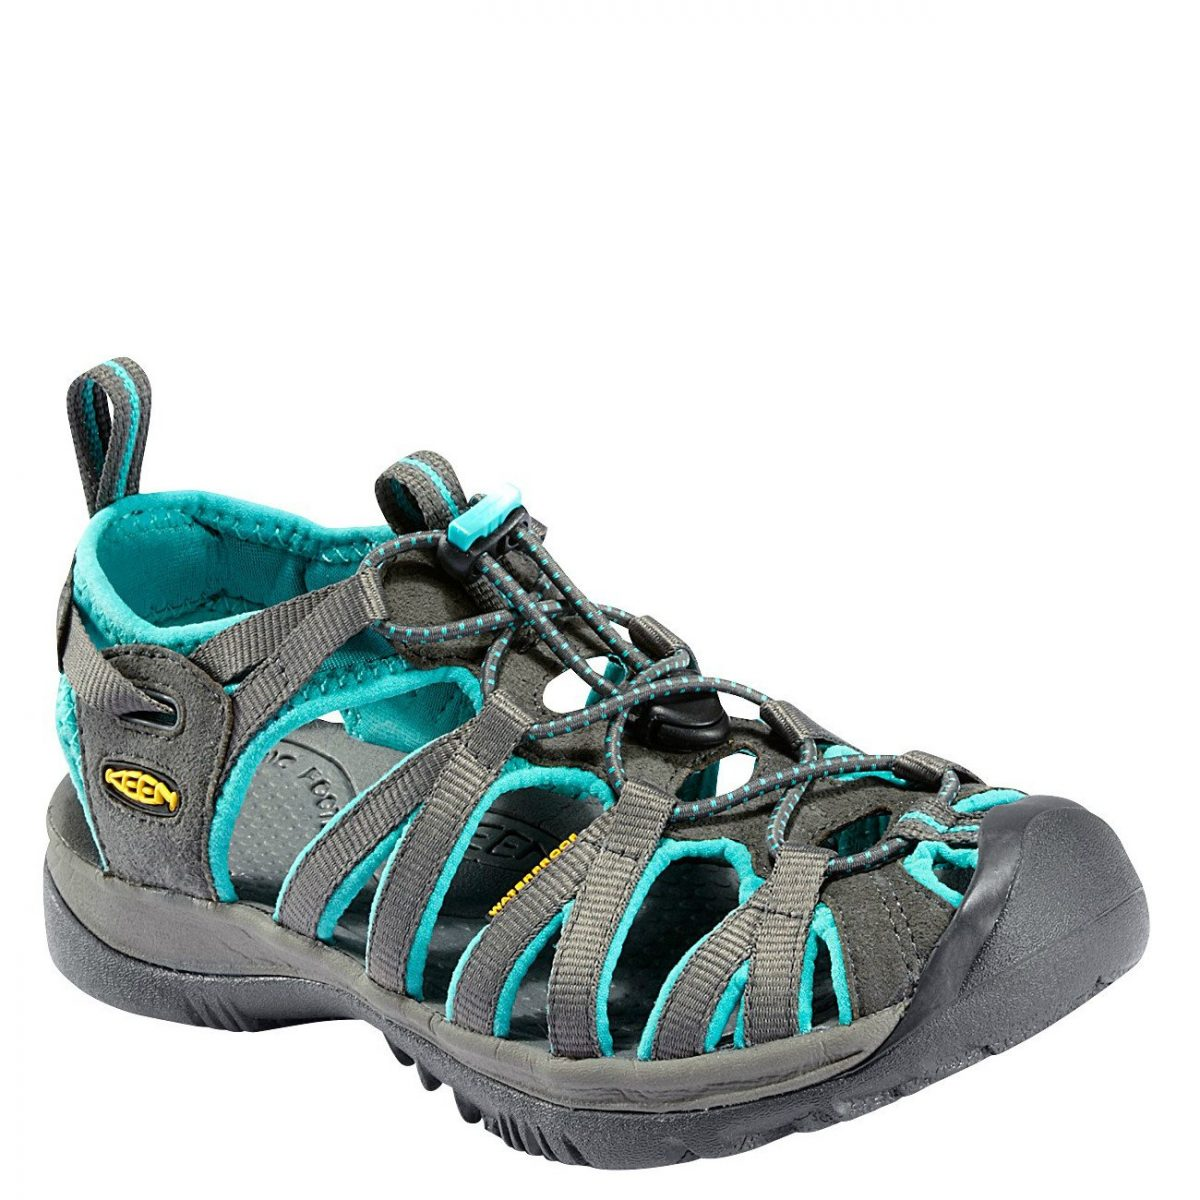 Water Shoes, KEEN Women's Whisper Sandals